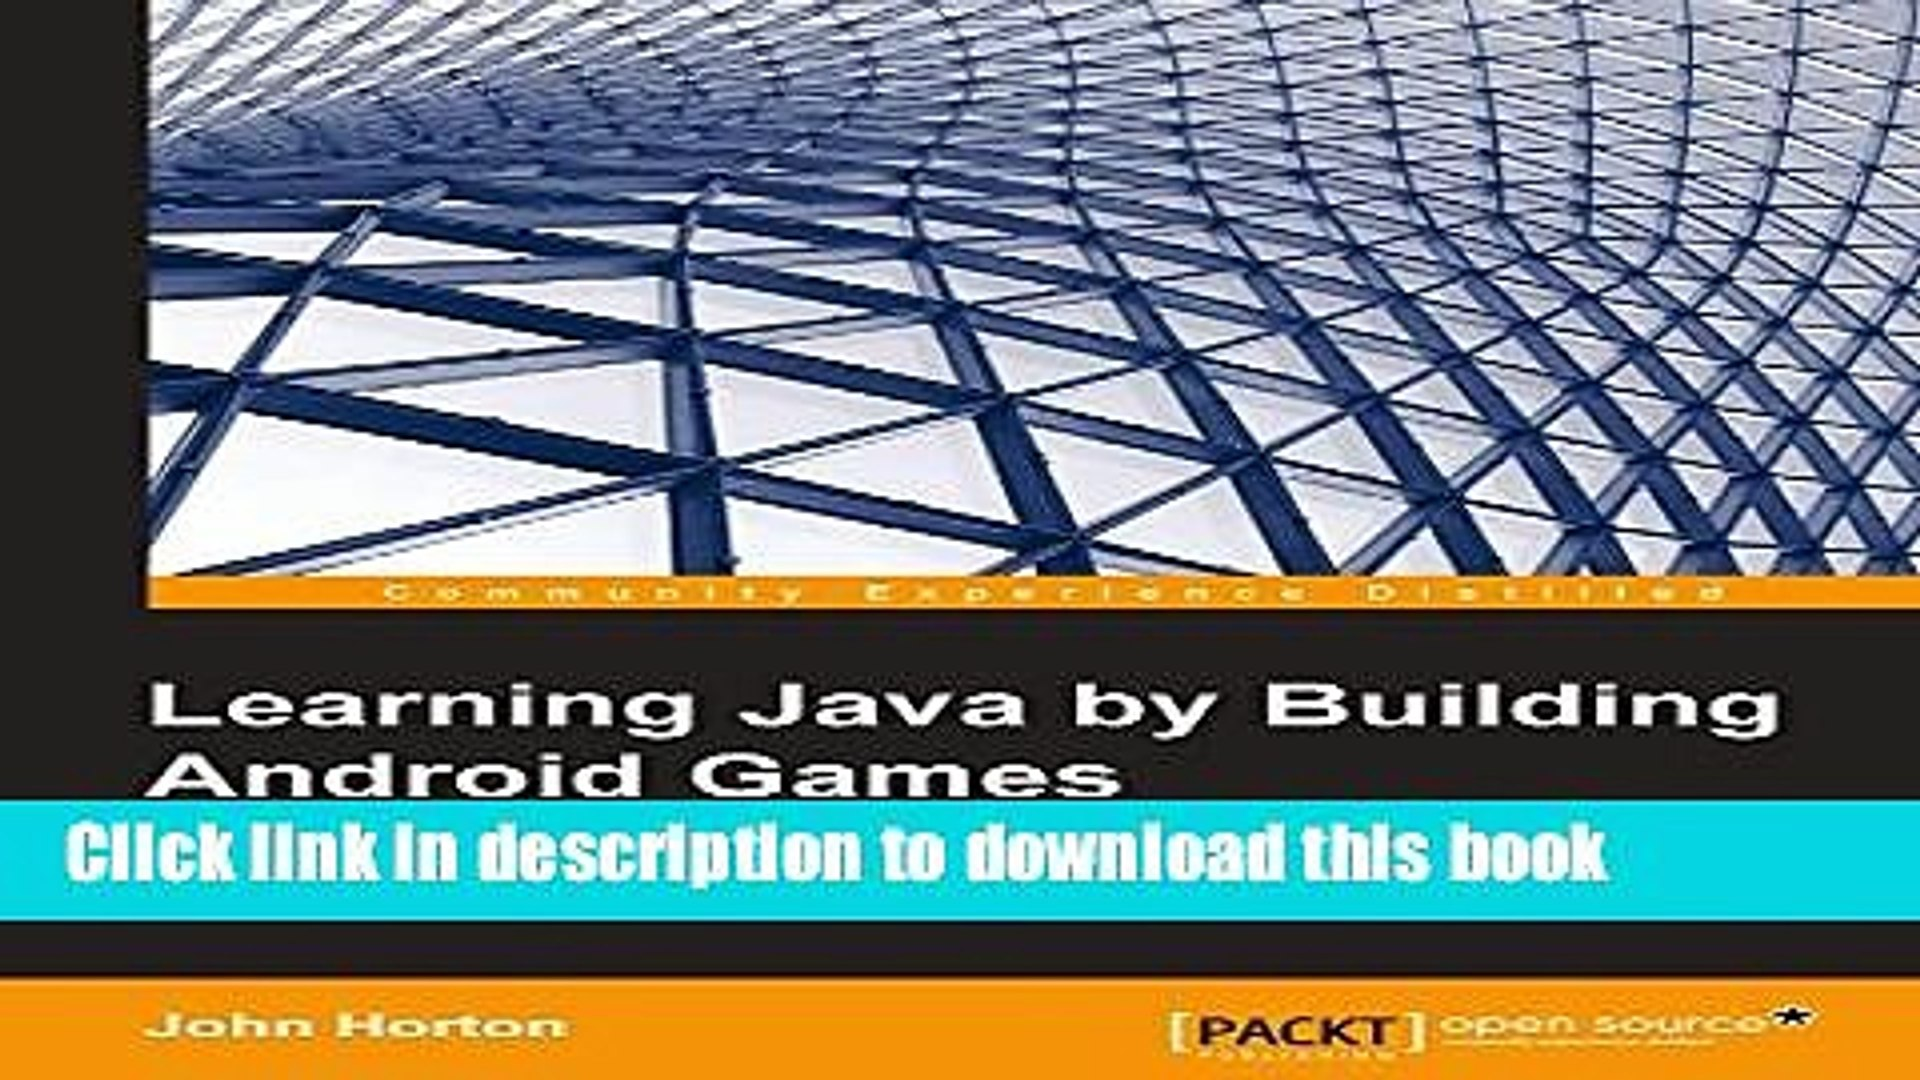 Books Learning Java by Building Android Games - Explore Java Through Mobile Game Development Free